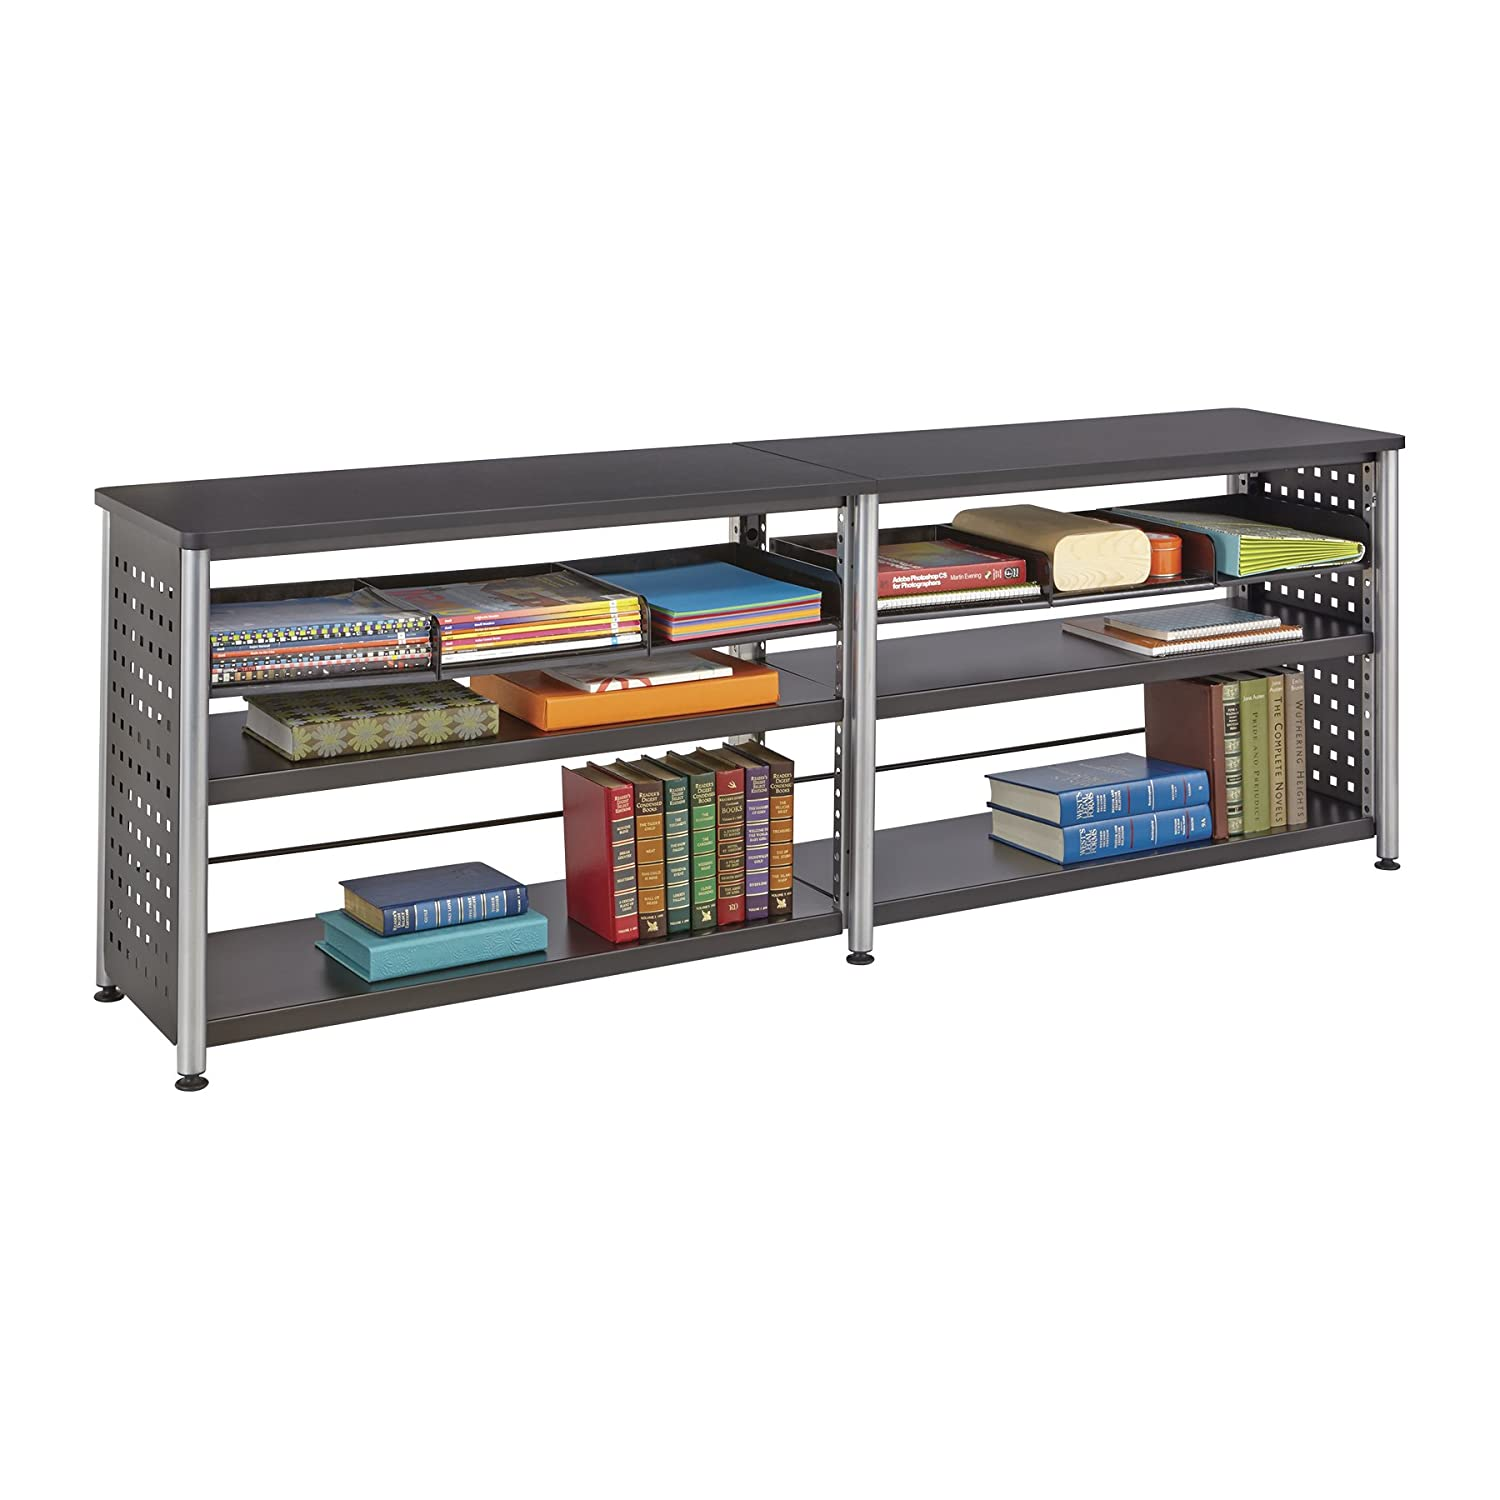 Safco Products Scoot 2-Shelf Bookcase, Black Safco Products CA 1601BL